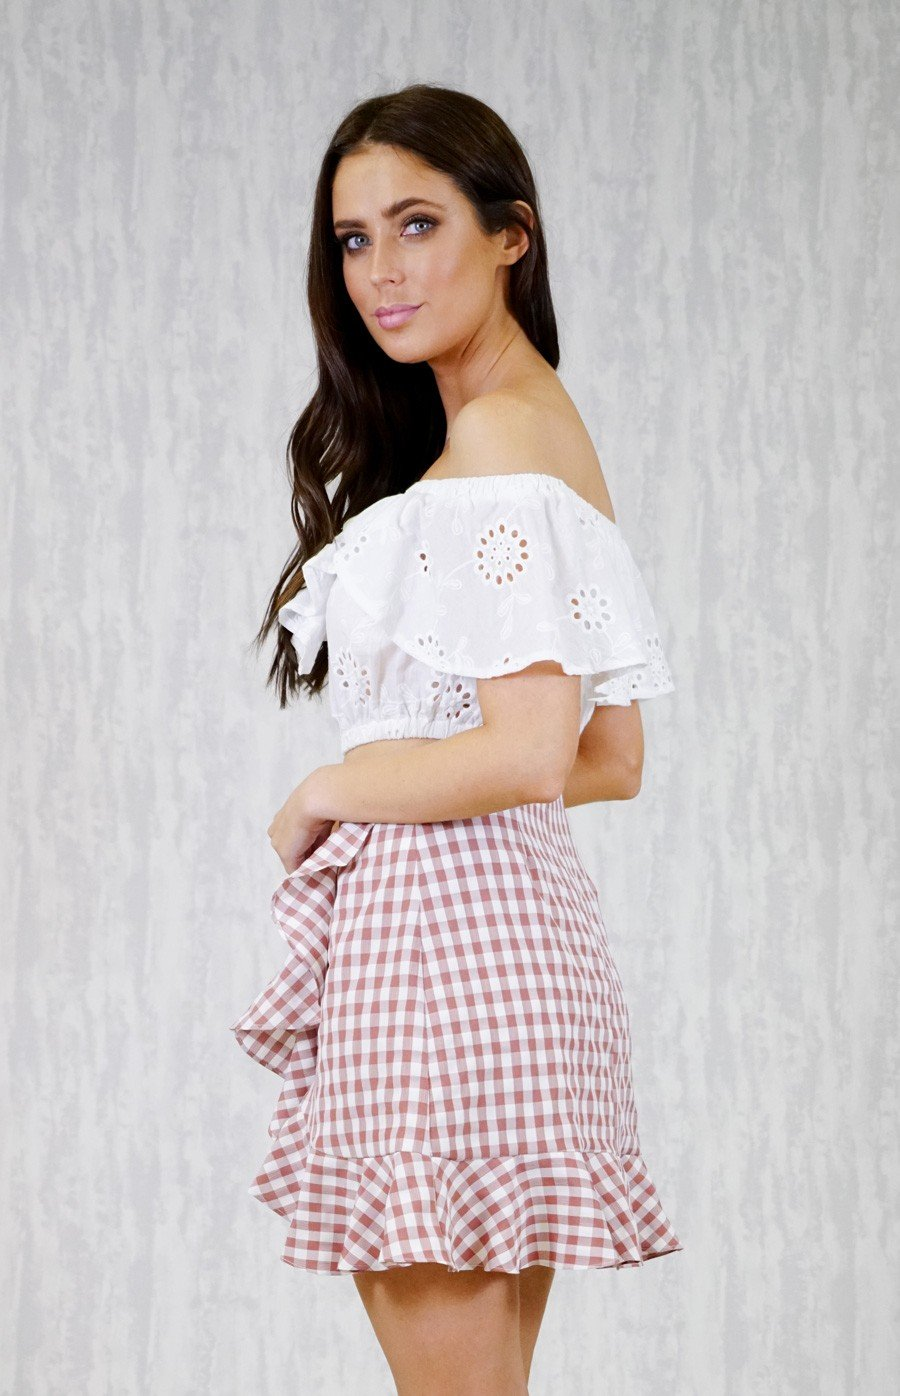 Pop Rocks Gingham Skirt - Boho Buys